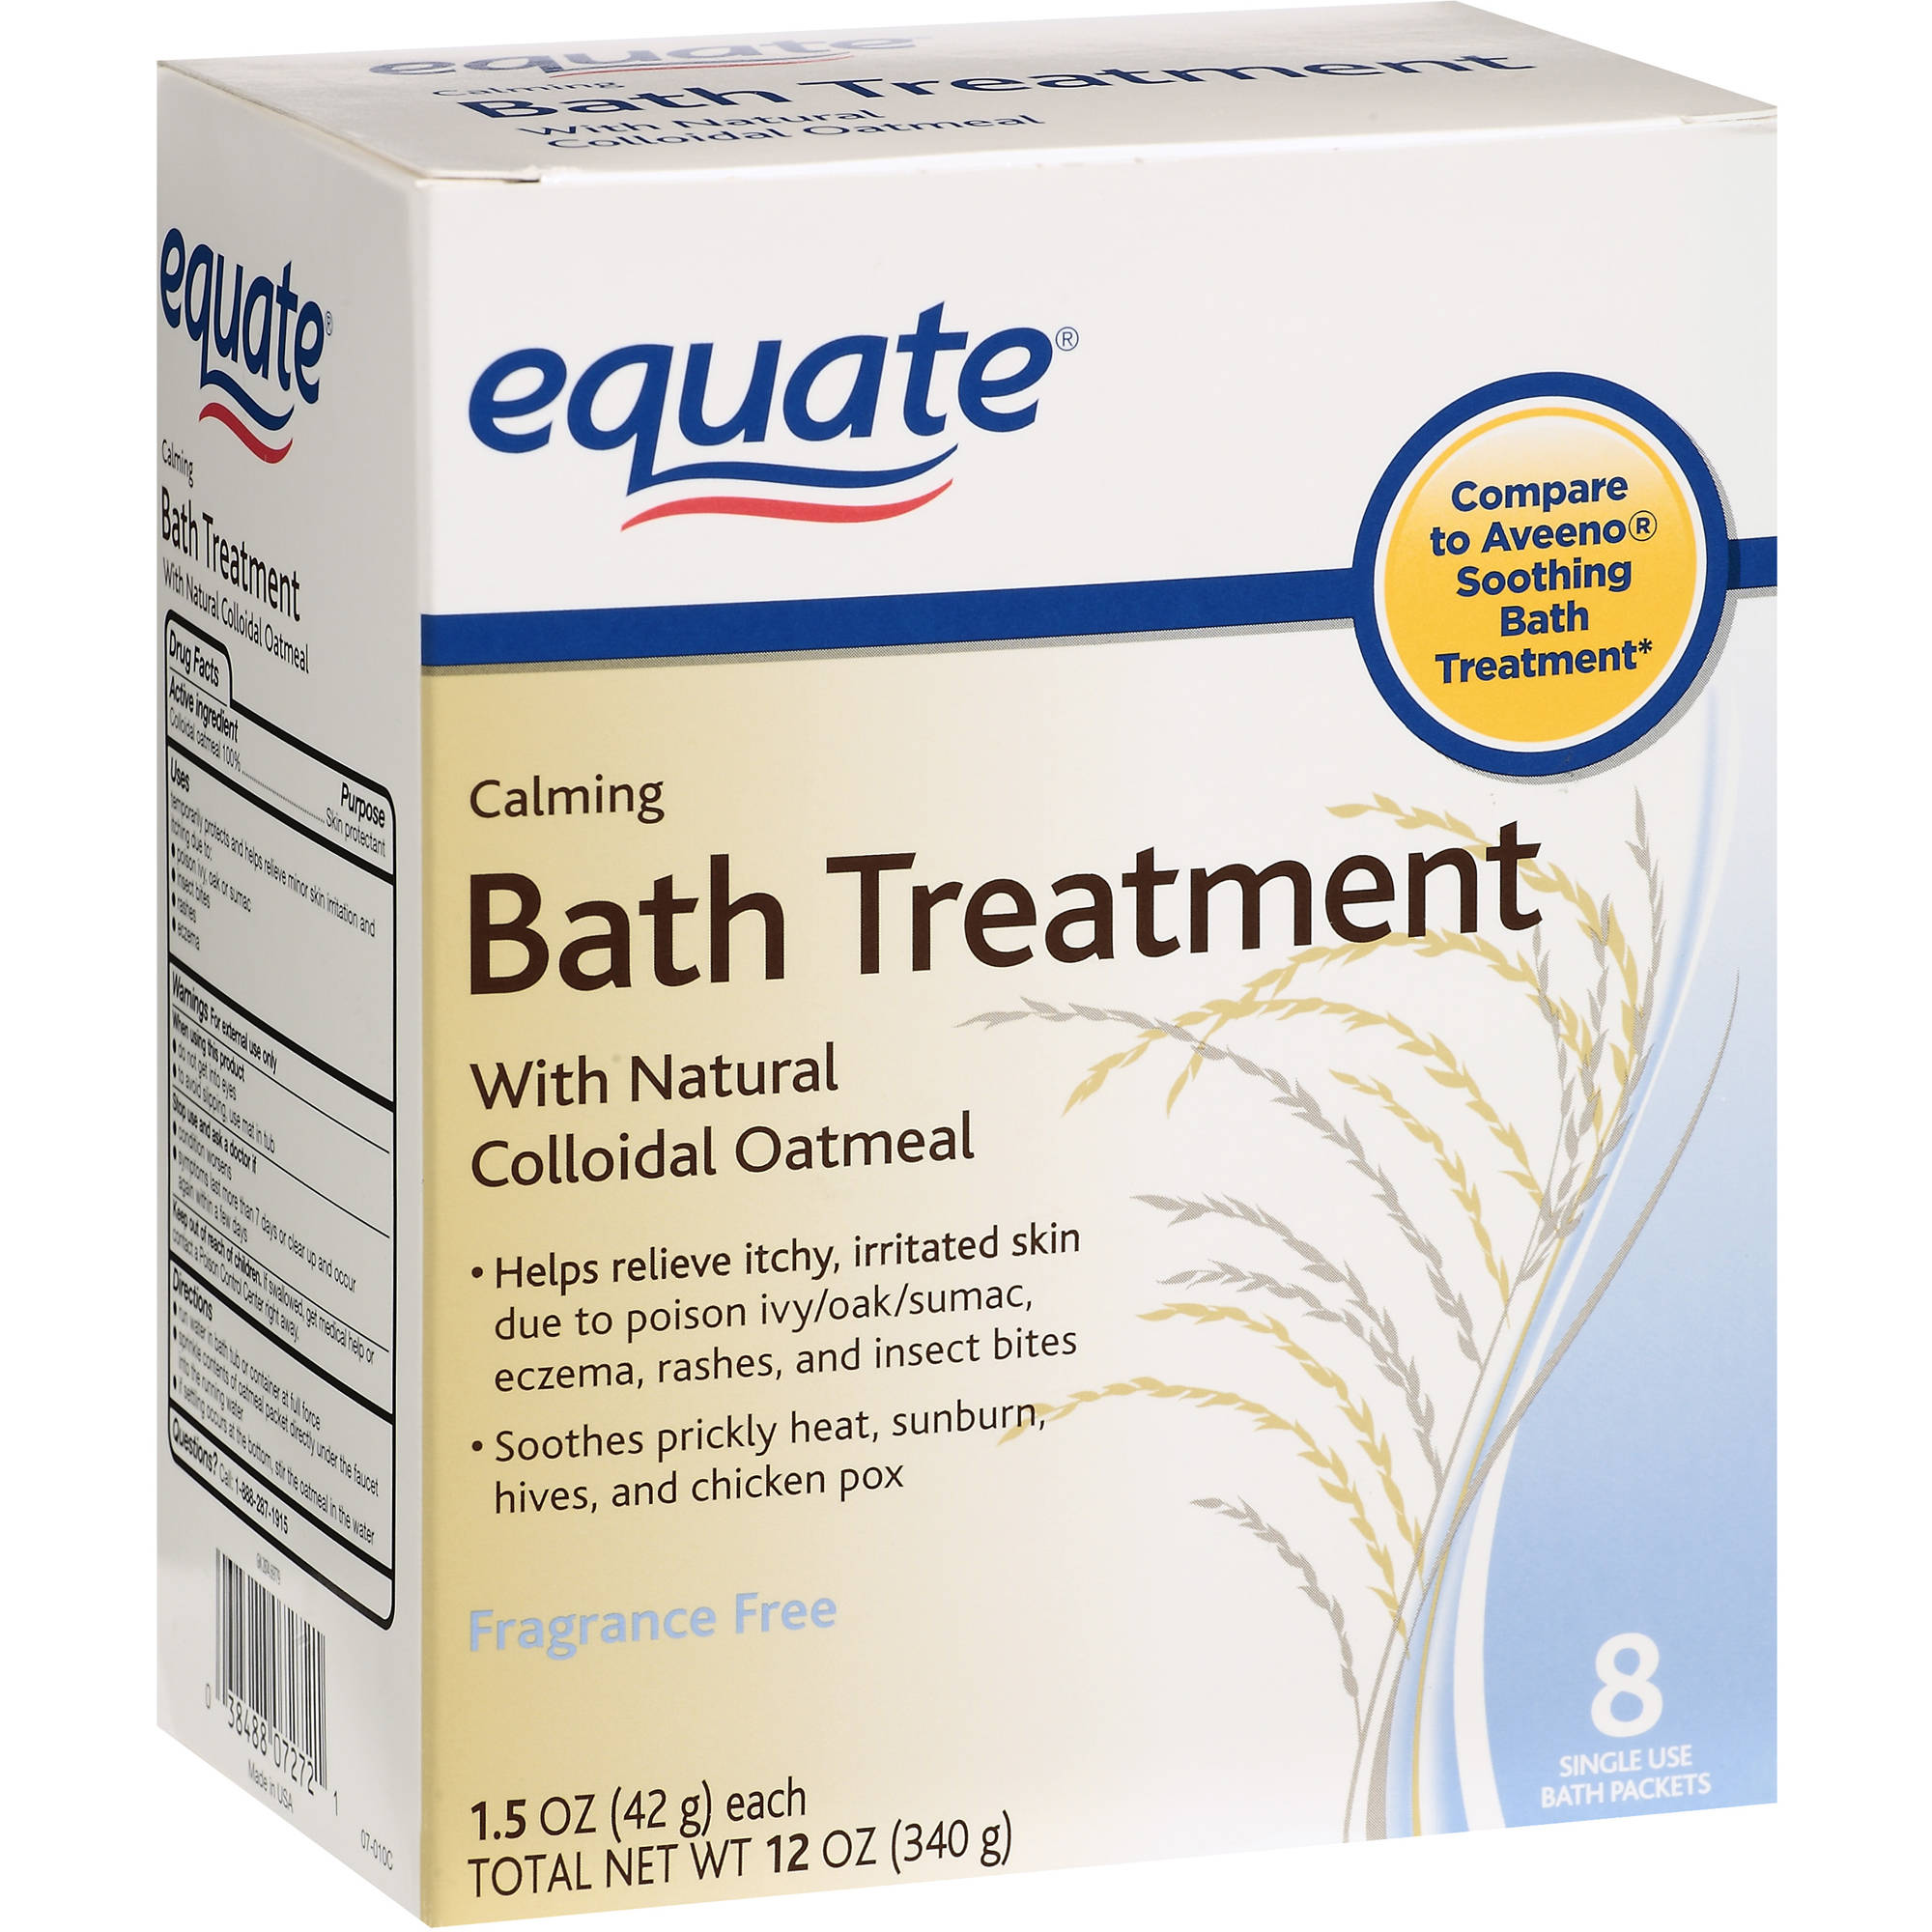 Equate Calming Bath Treatment Packets, 8 count